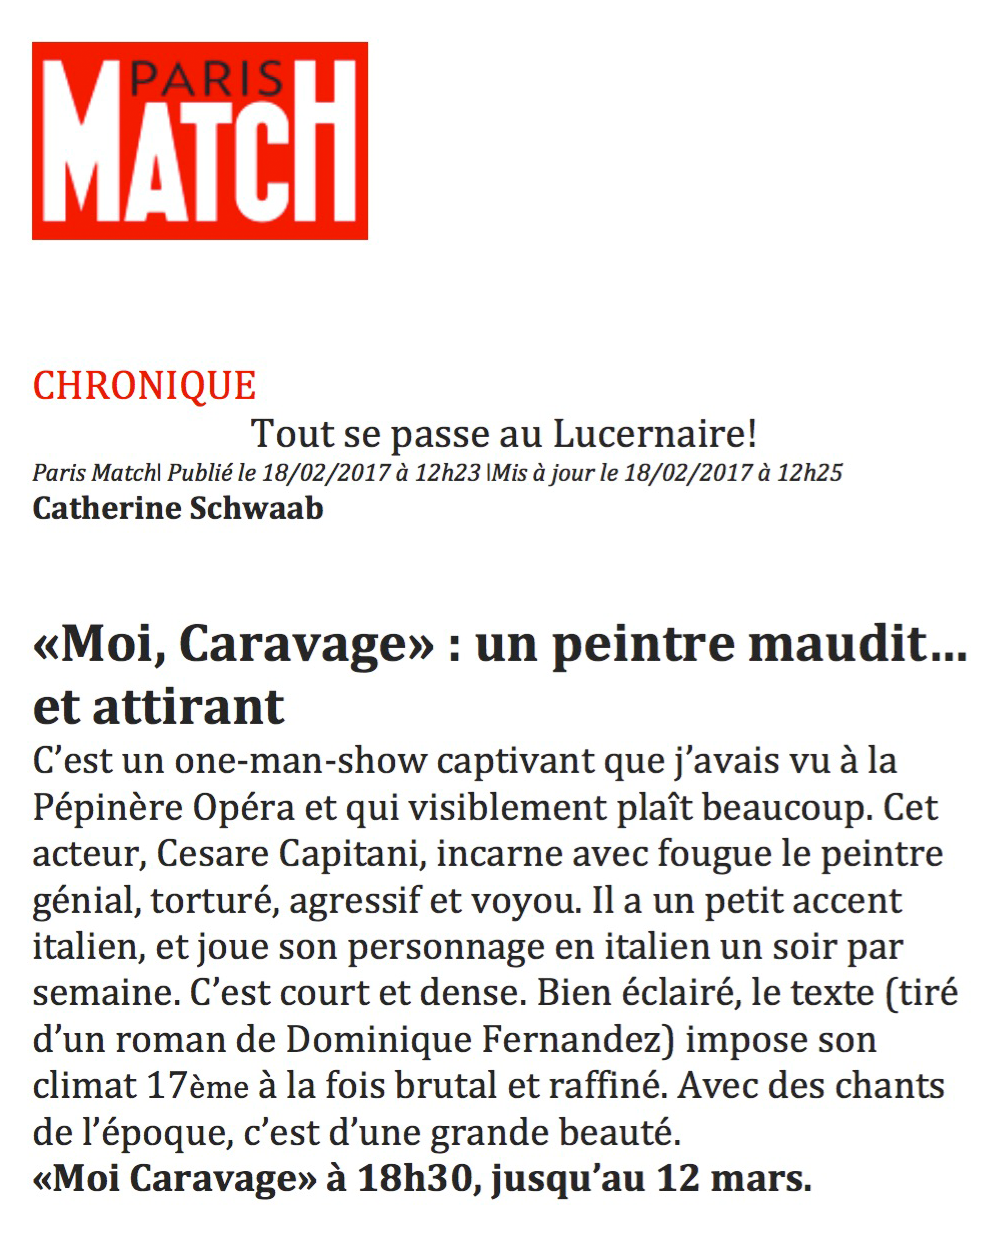 article dans Paris Match